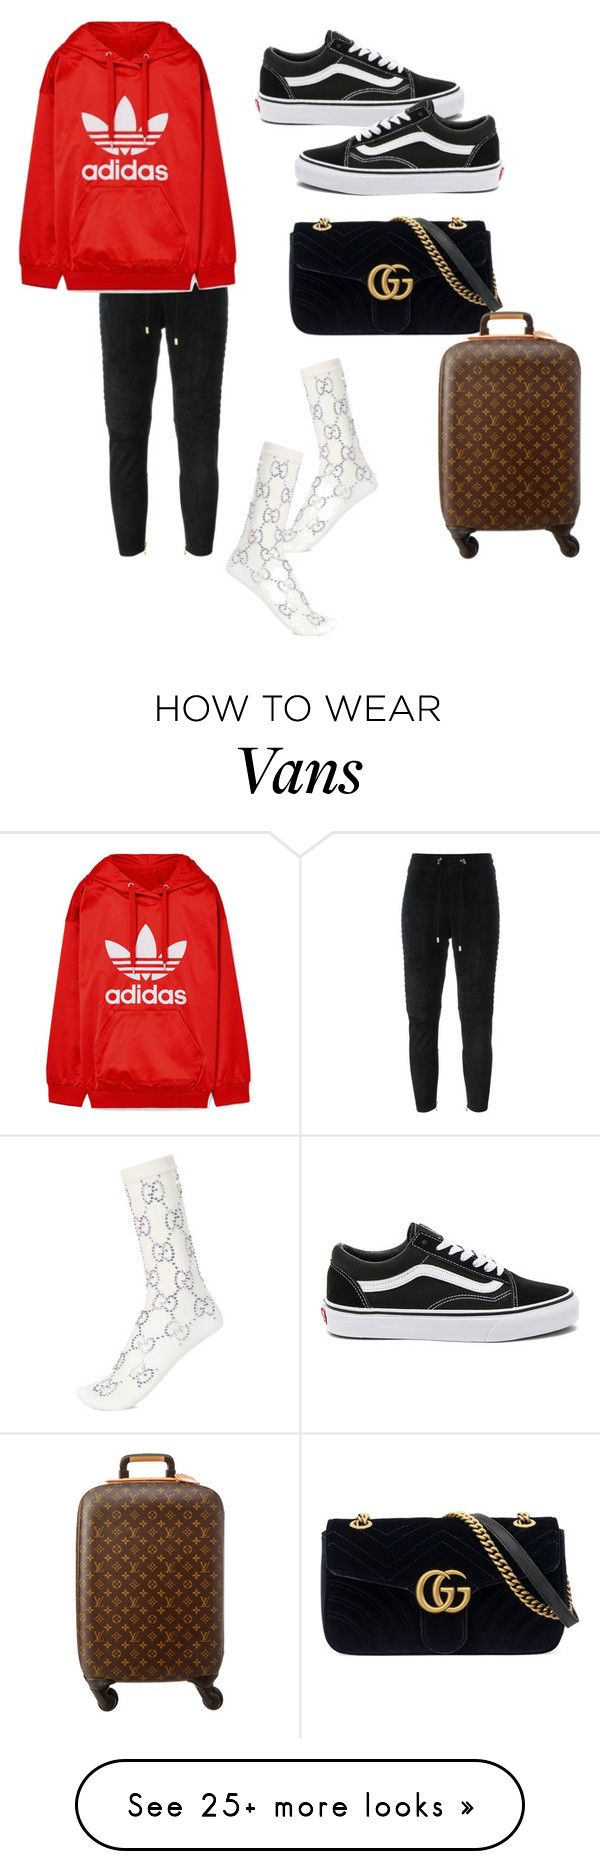 """Untitled #485"" by liloham on Polyvore featuring Balmain, adidas Originals, Vans, Gucci and Louis Vuitton"